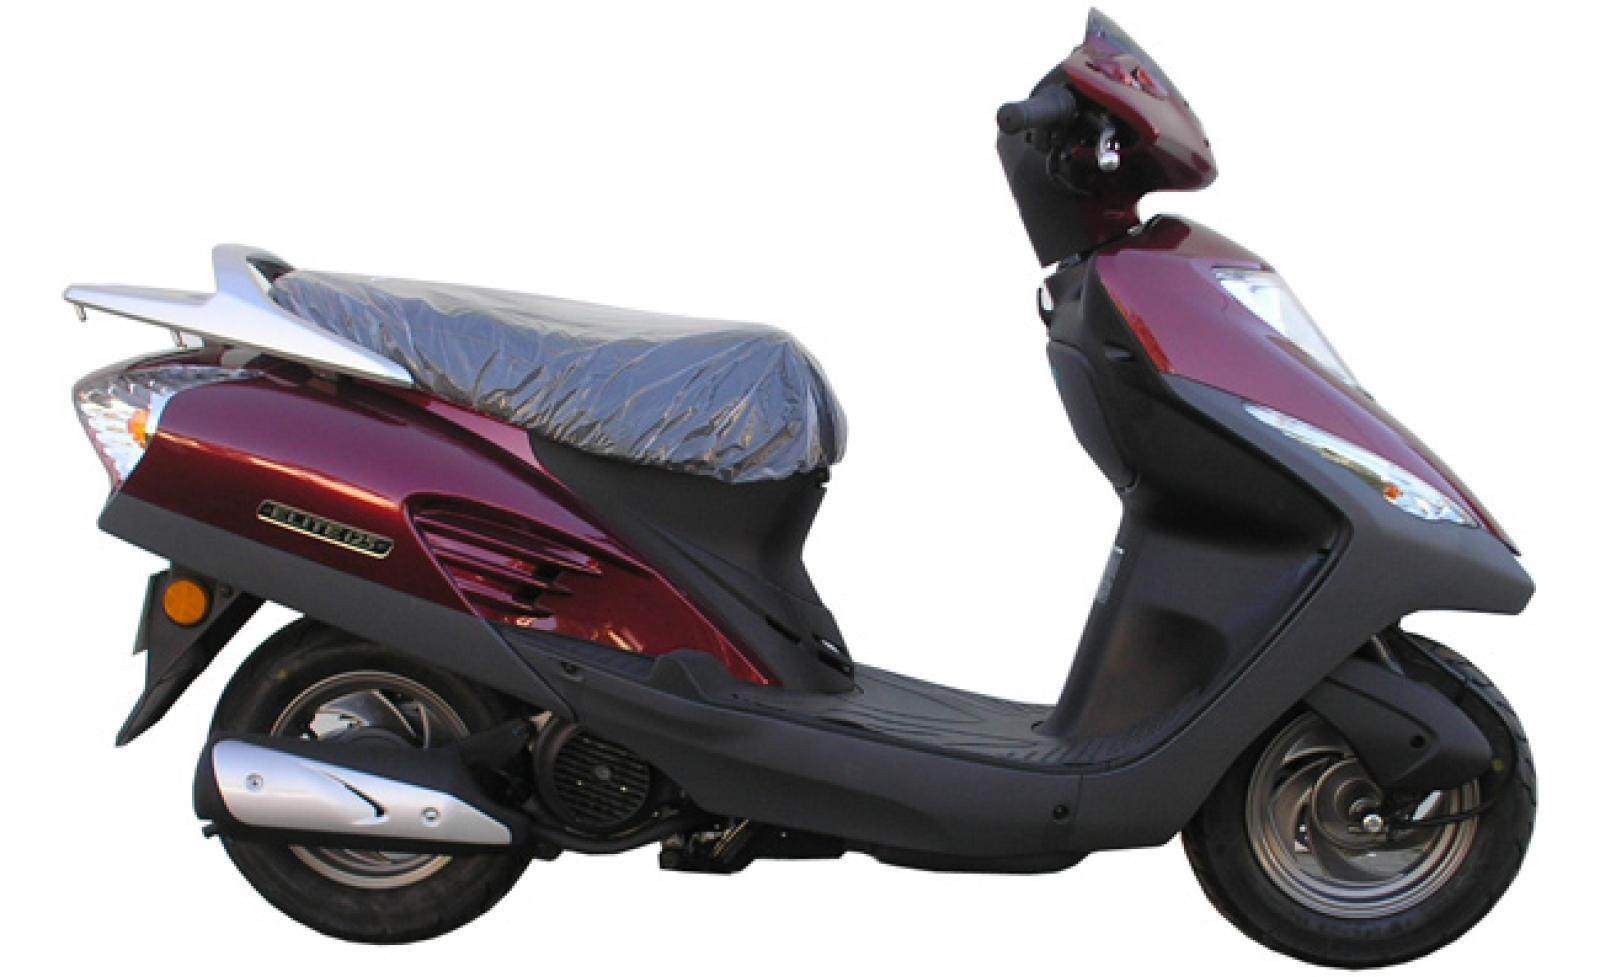 2008 honda elite 125 moto zombdrive com. Black Bedroom Furniture Sets. Home Design Ideas